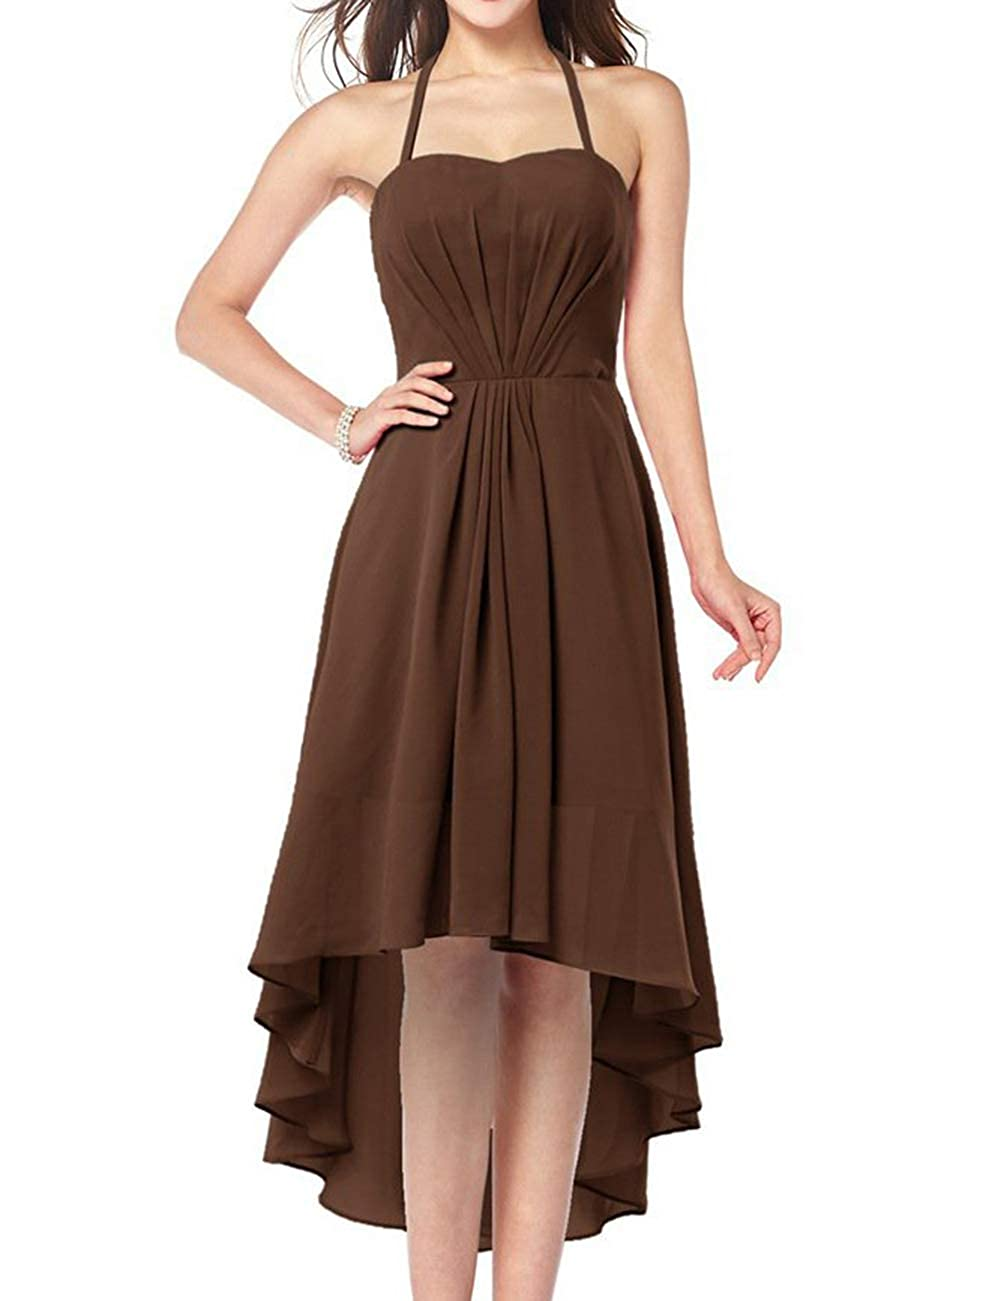 Chocolate Uther Plus Size Bridesmaid Dresses Long Aline Halter Hi Lo Evening Prom Party Gown